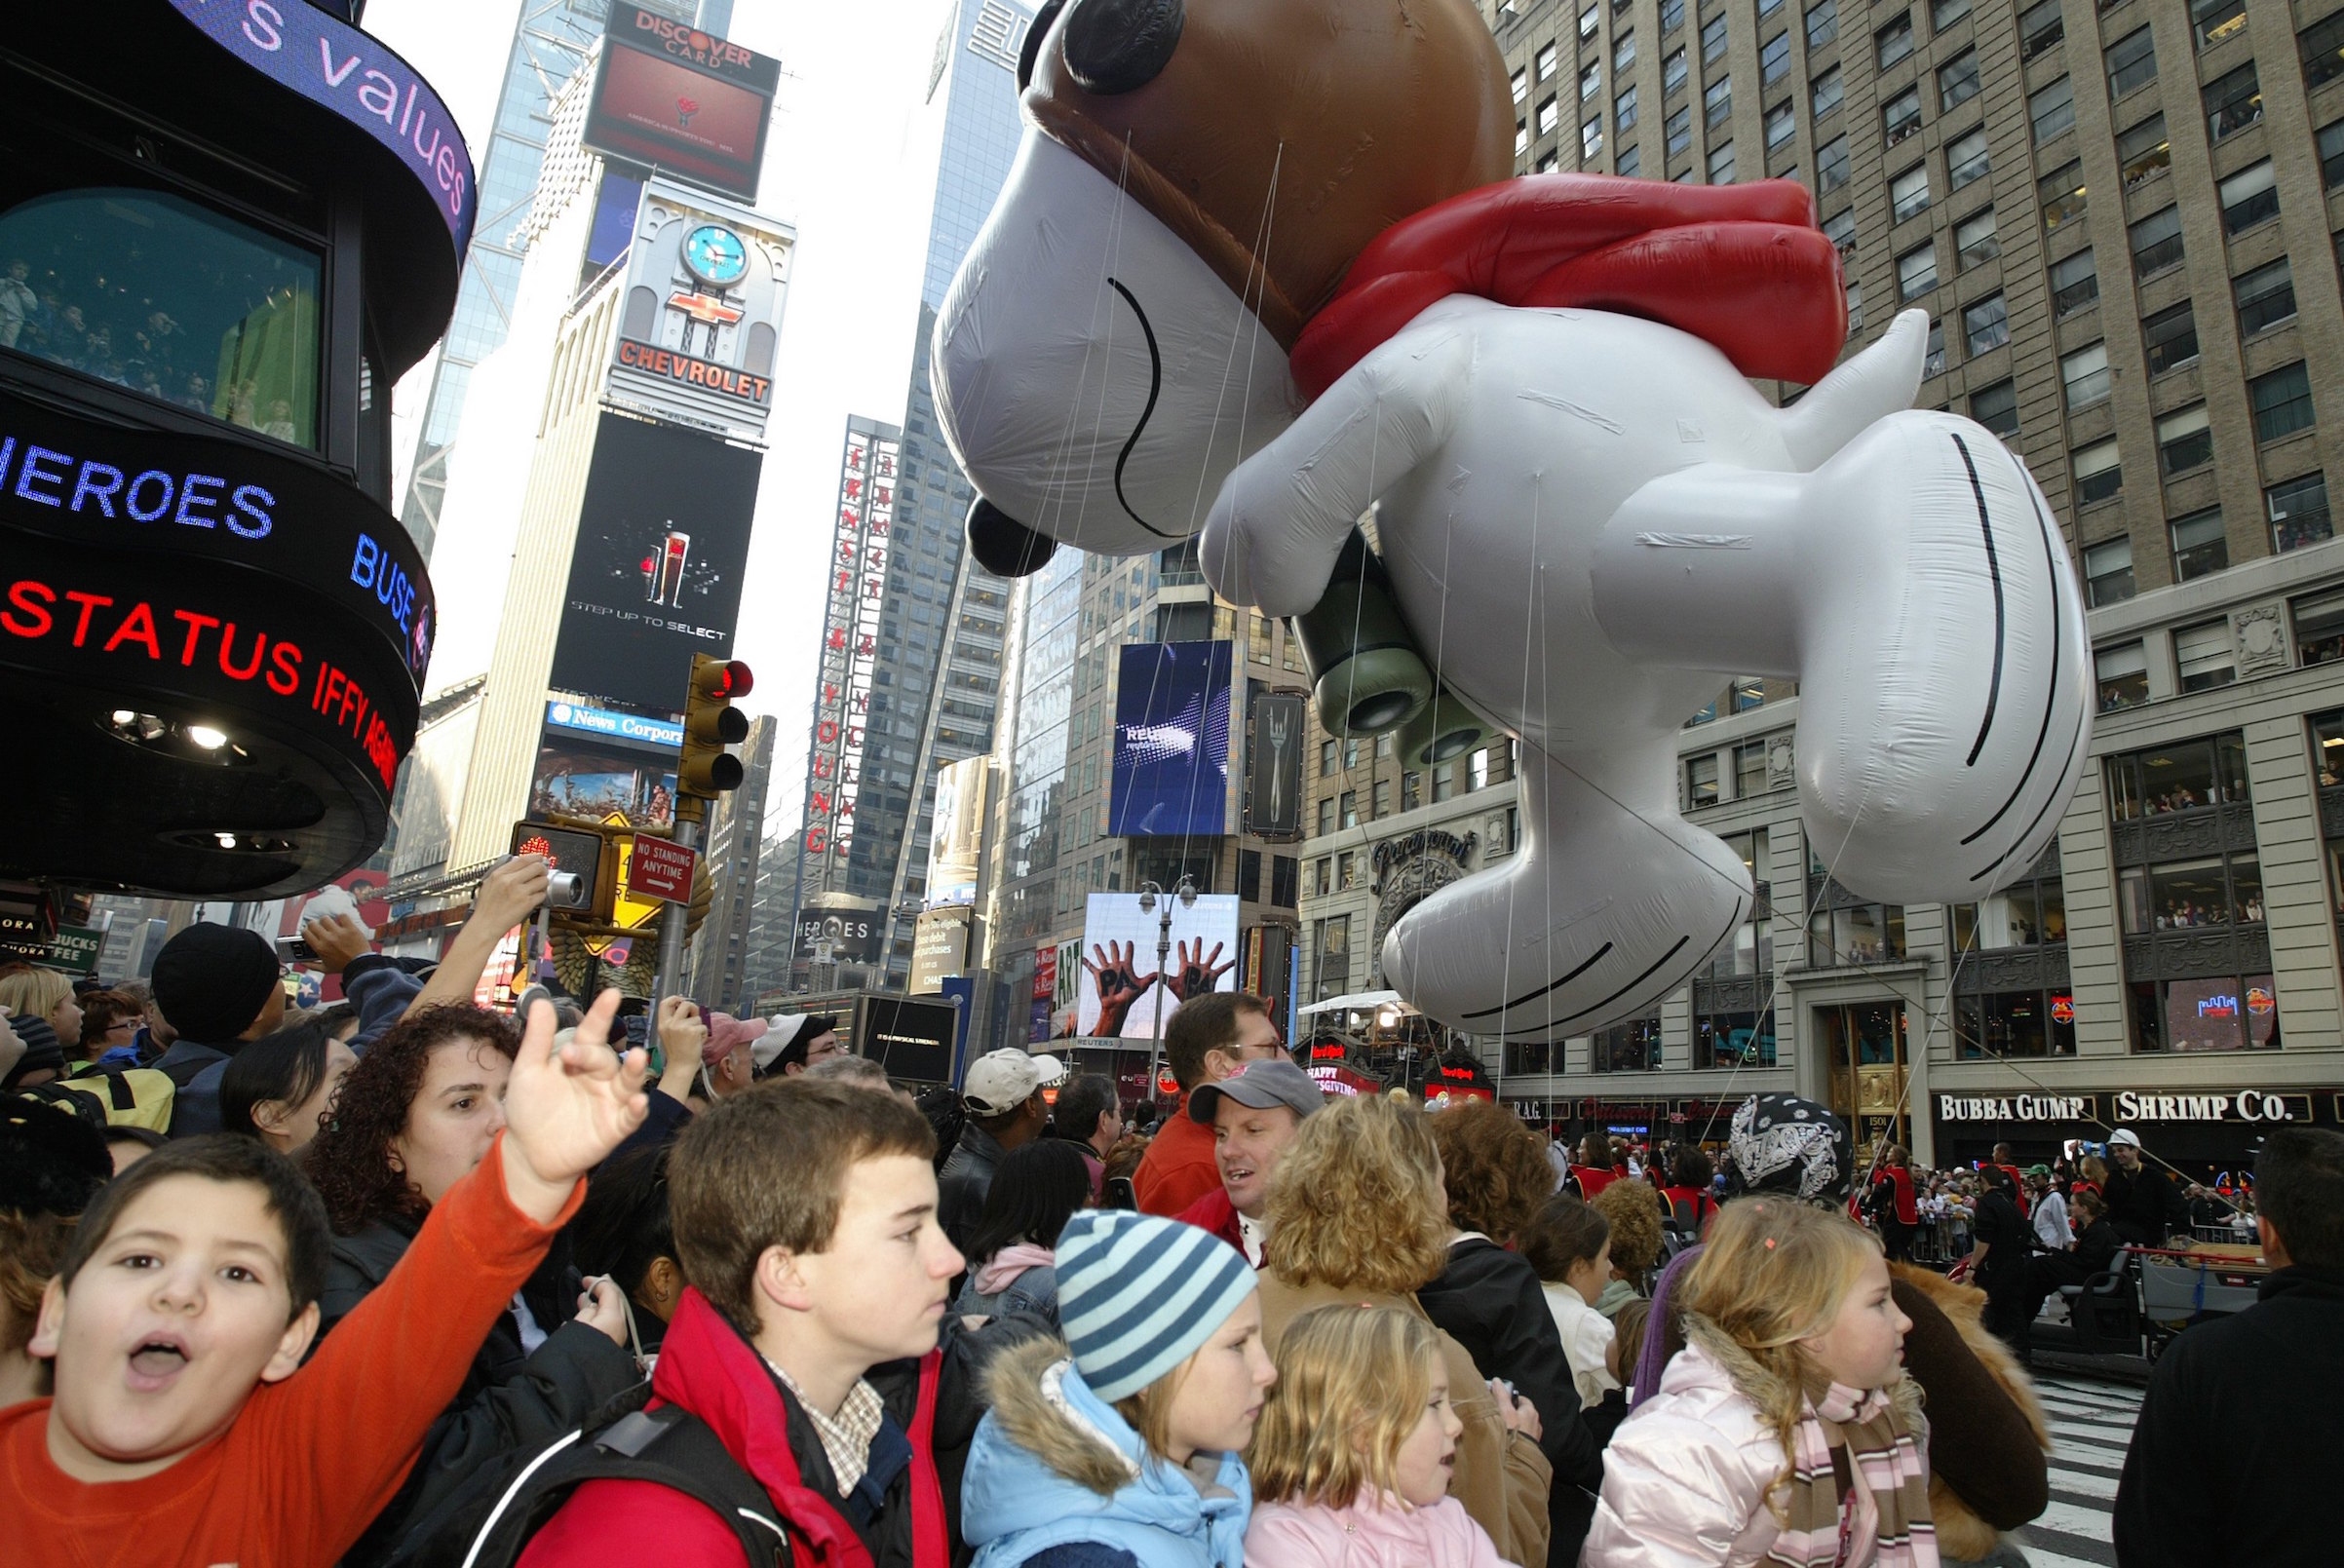 A balloon of Snoopy as the Flying Ace at the 81st Annual Macy's Thanksgiving Day Parade, on Nov. 22, 2007